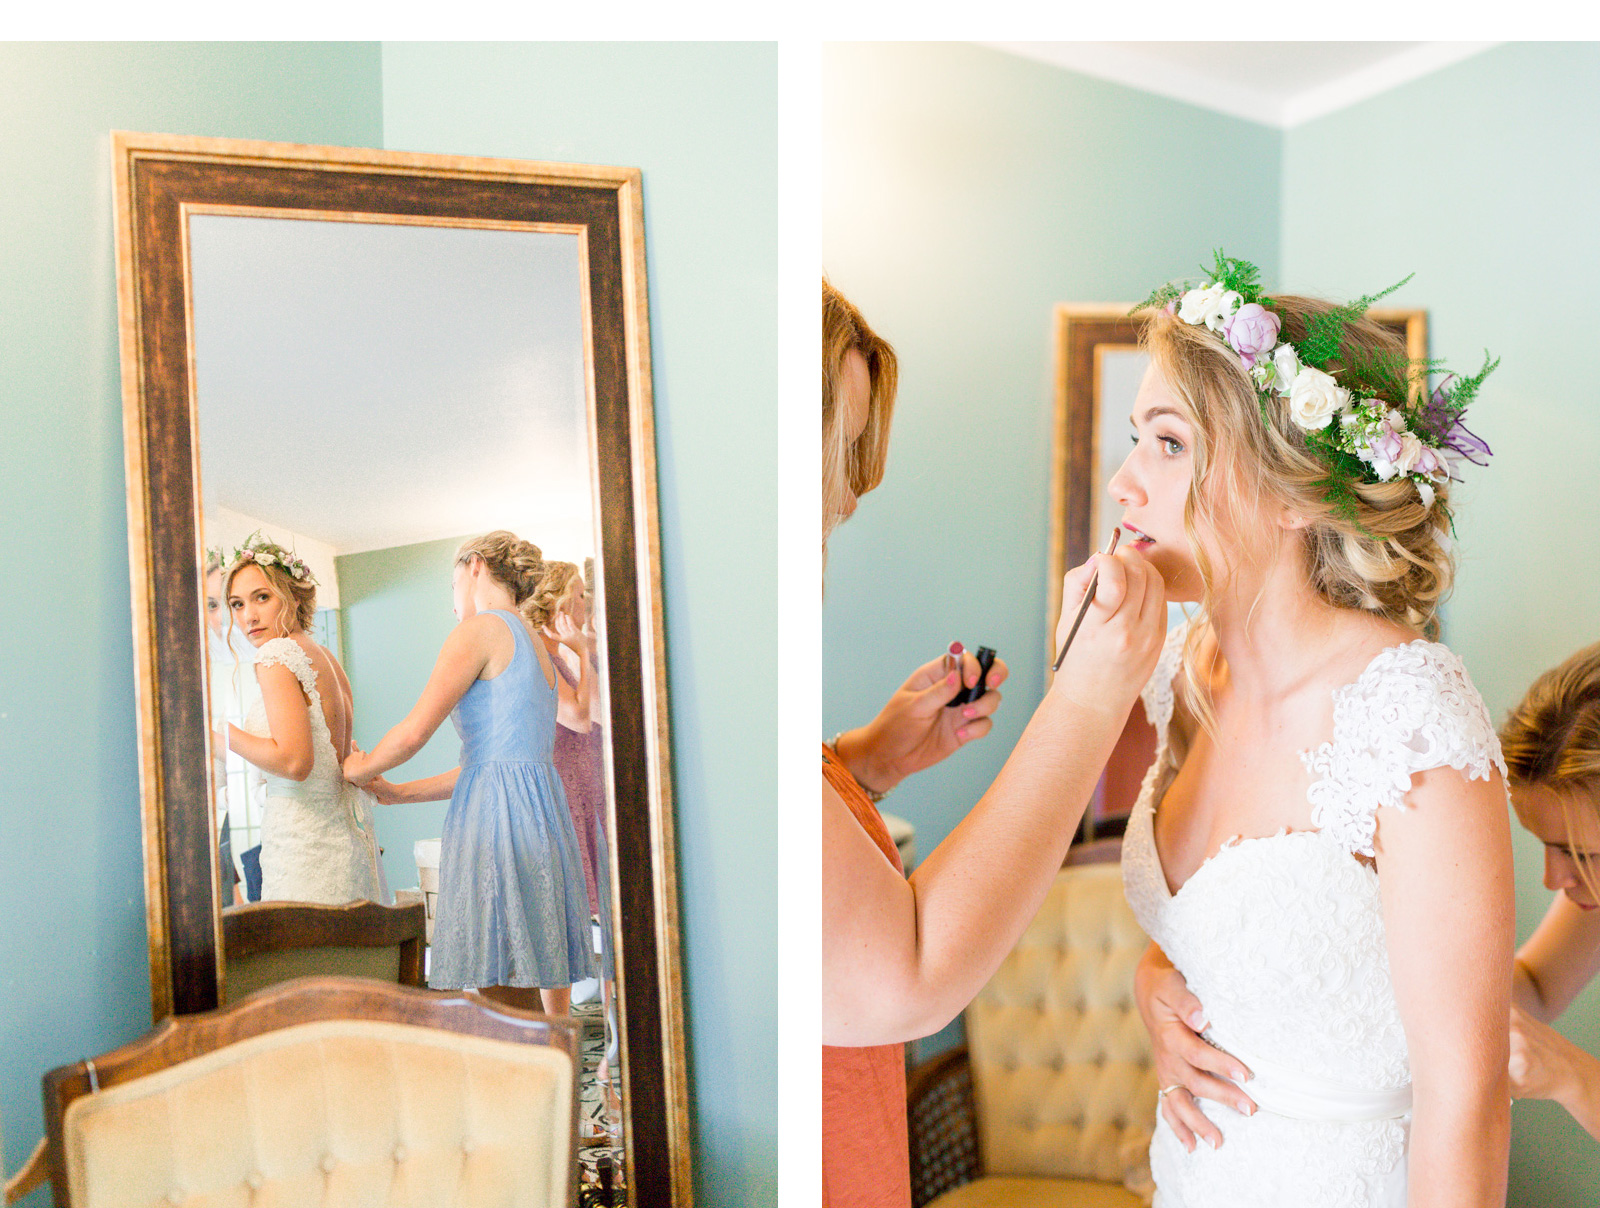 Salzman-Wedding-Getting-Ready-Natalie-Schutt-Photography_06.jpg